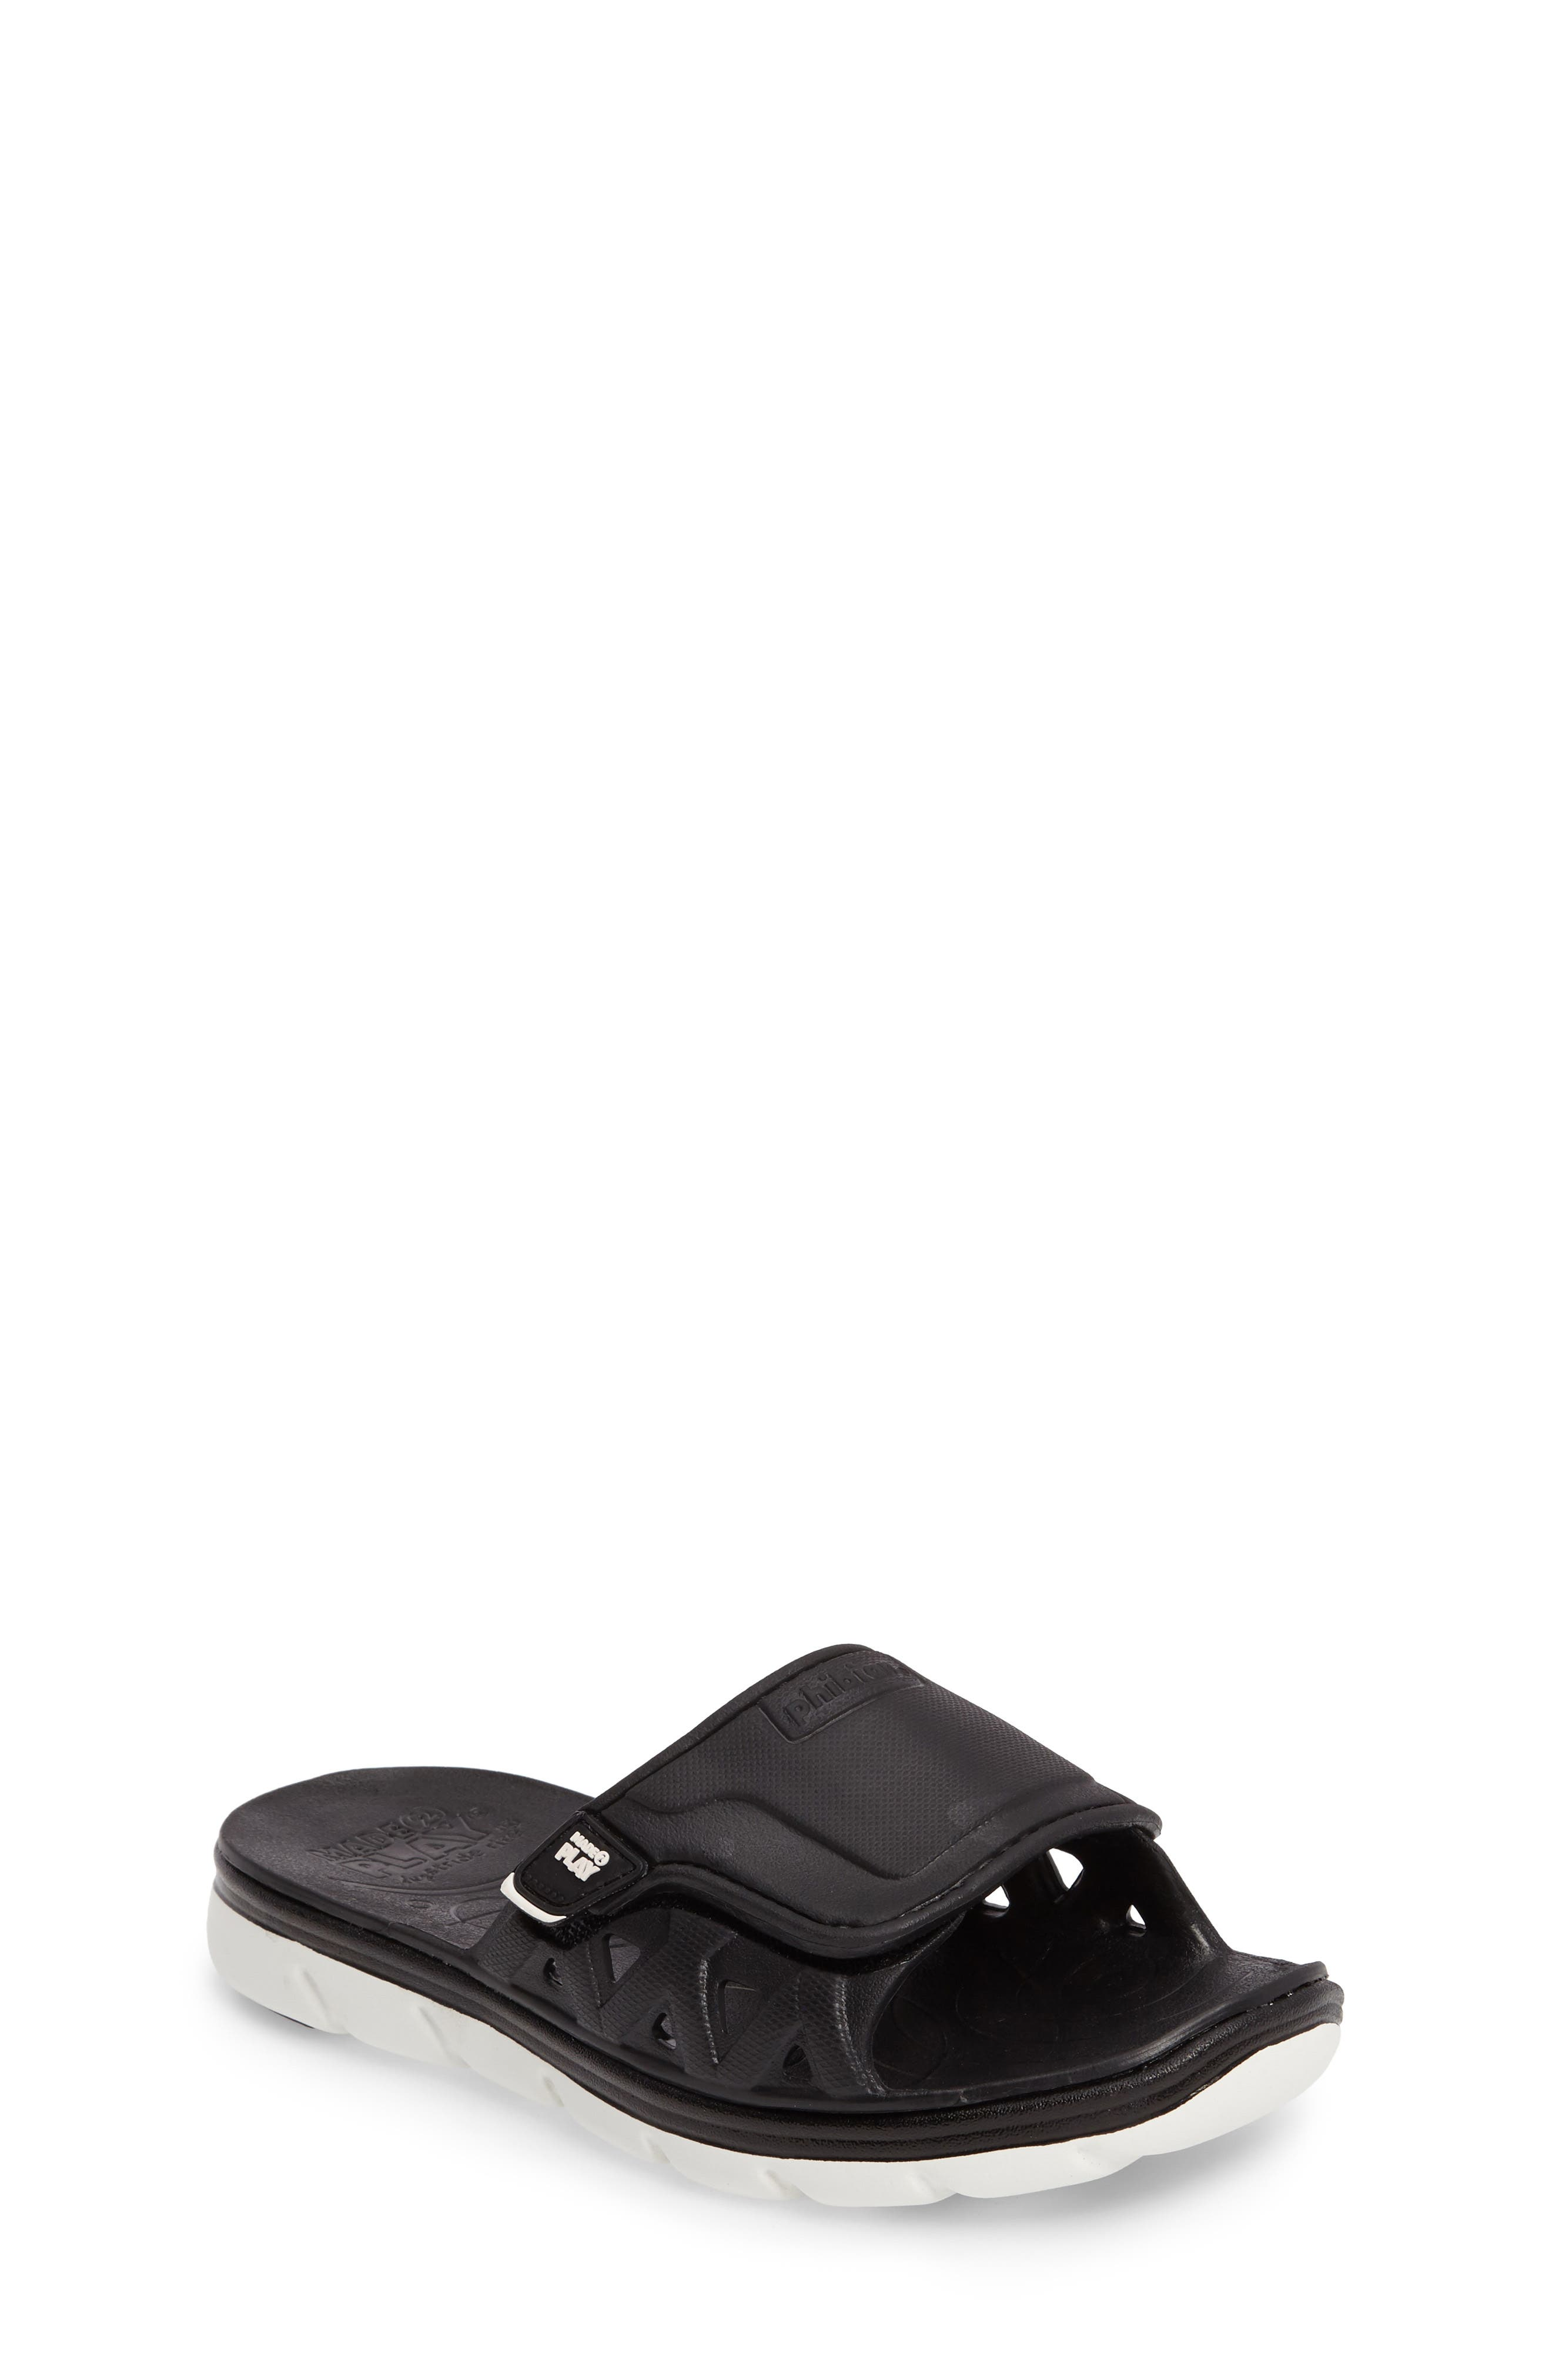 Made2Play<sup>®</sup> Phibian Slide,                         Main,                         color, Black/ White